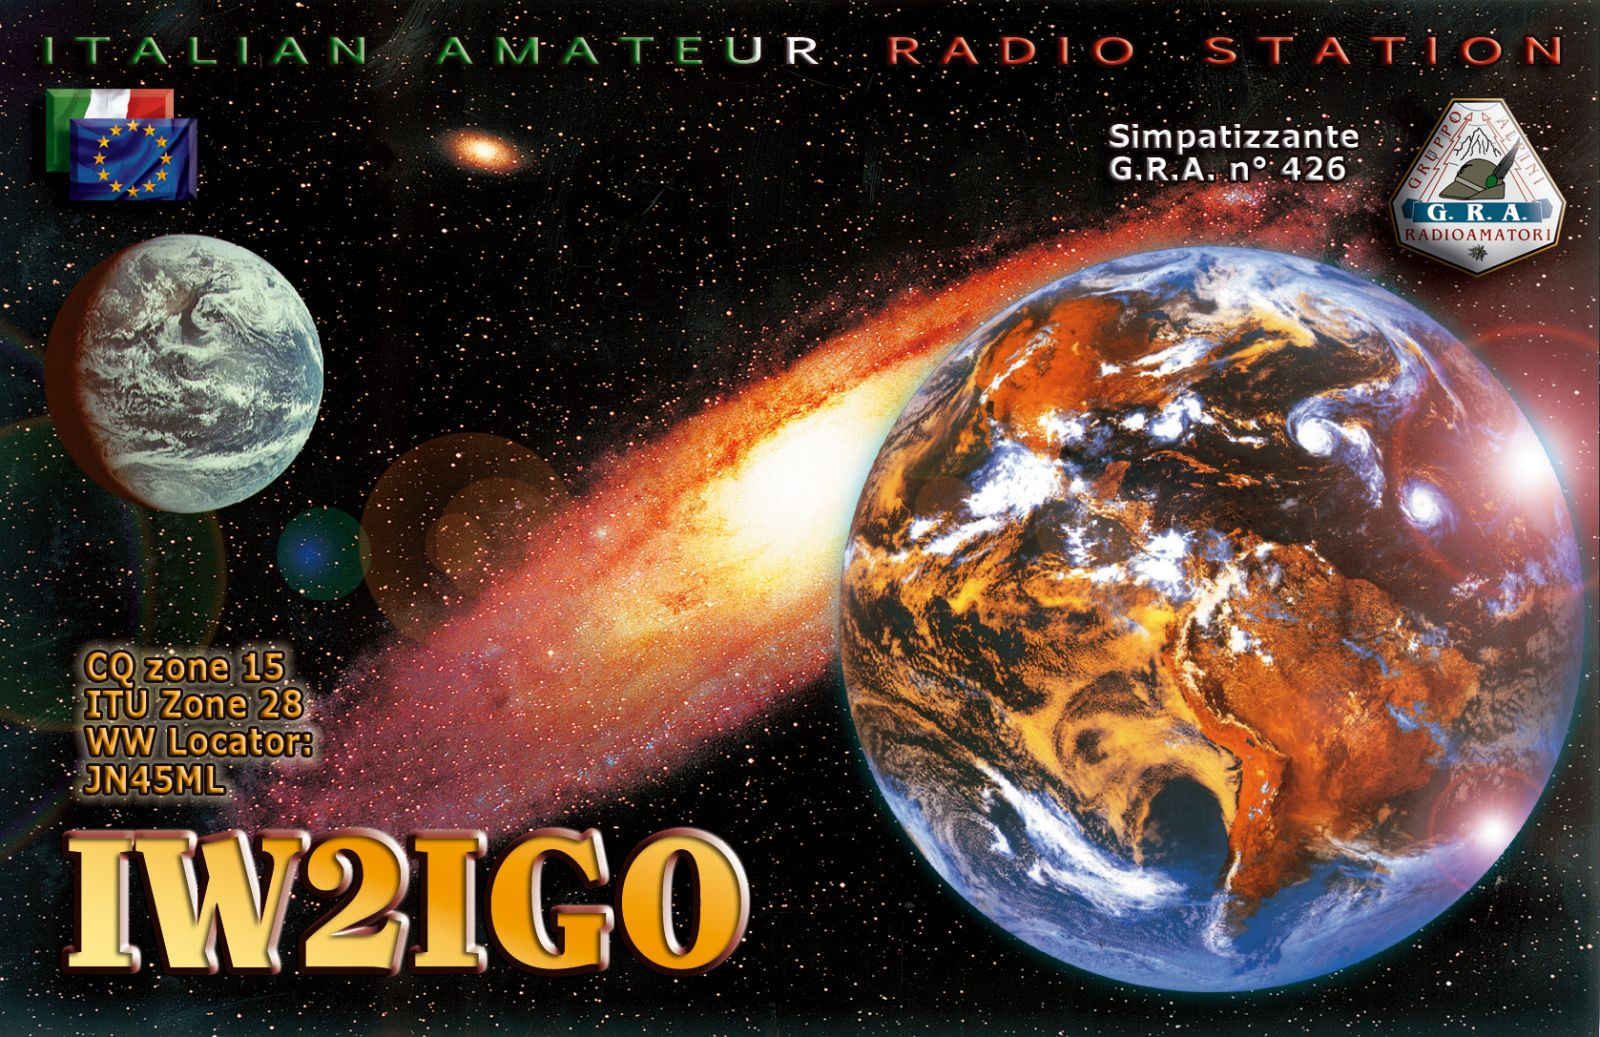 QSL image for IW2IGO